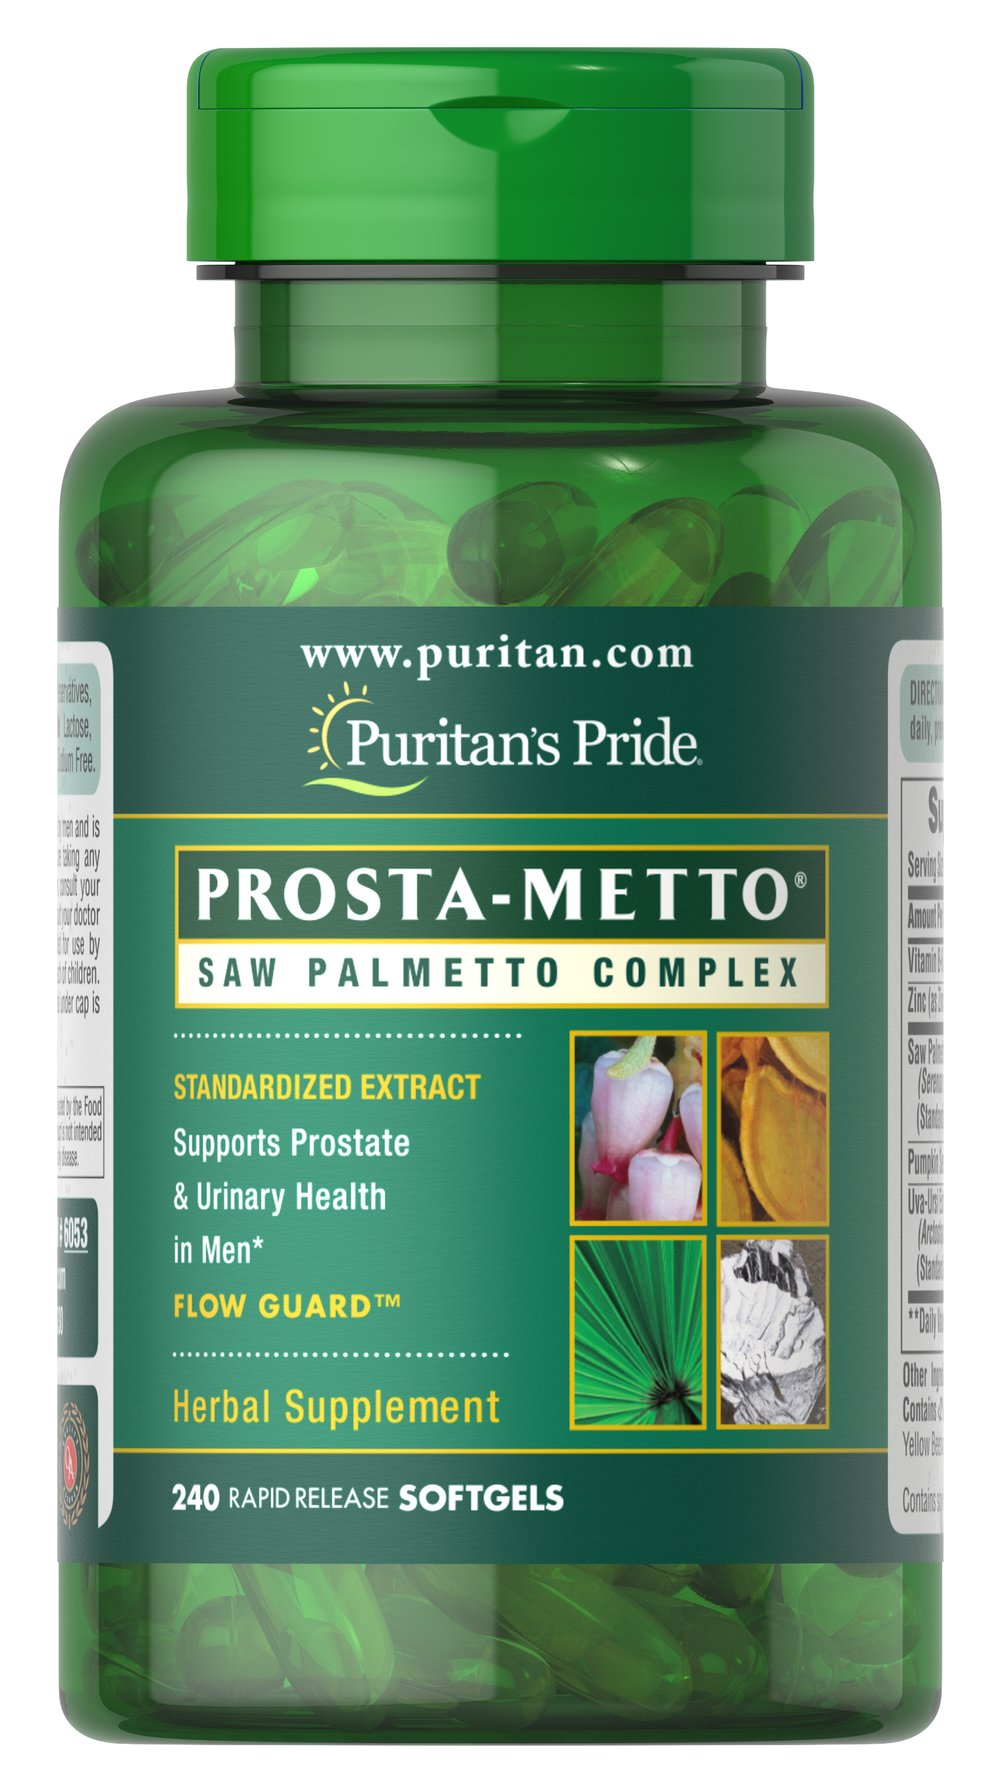 Saw Palmetto Complex For Men <p>Extra Strength Prosta-Metto® softgels deliver 160 mg of standardized Saw Palmetto to support prostate and urinary health in men.** Saw Palmetto is an extract derived from the berry of the Saw Palmetto tree and is the leading herb for men's health.** This formulation also includes Pumpkin Seed Oil, Pygeum and Uva-Ursi, traditional ingredients for men's health, plus Zinc for the immune system.** </p>  240 Softgels  $49.39